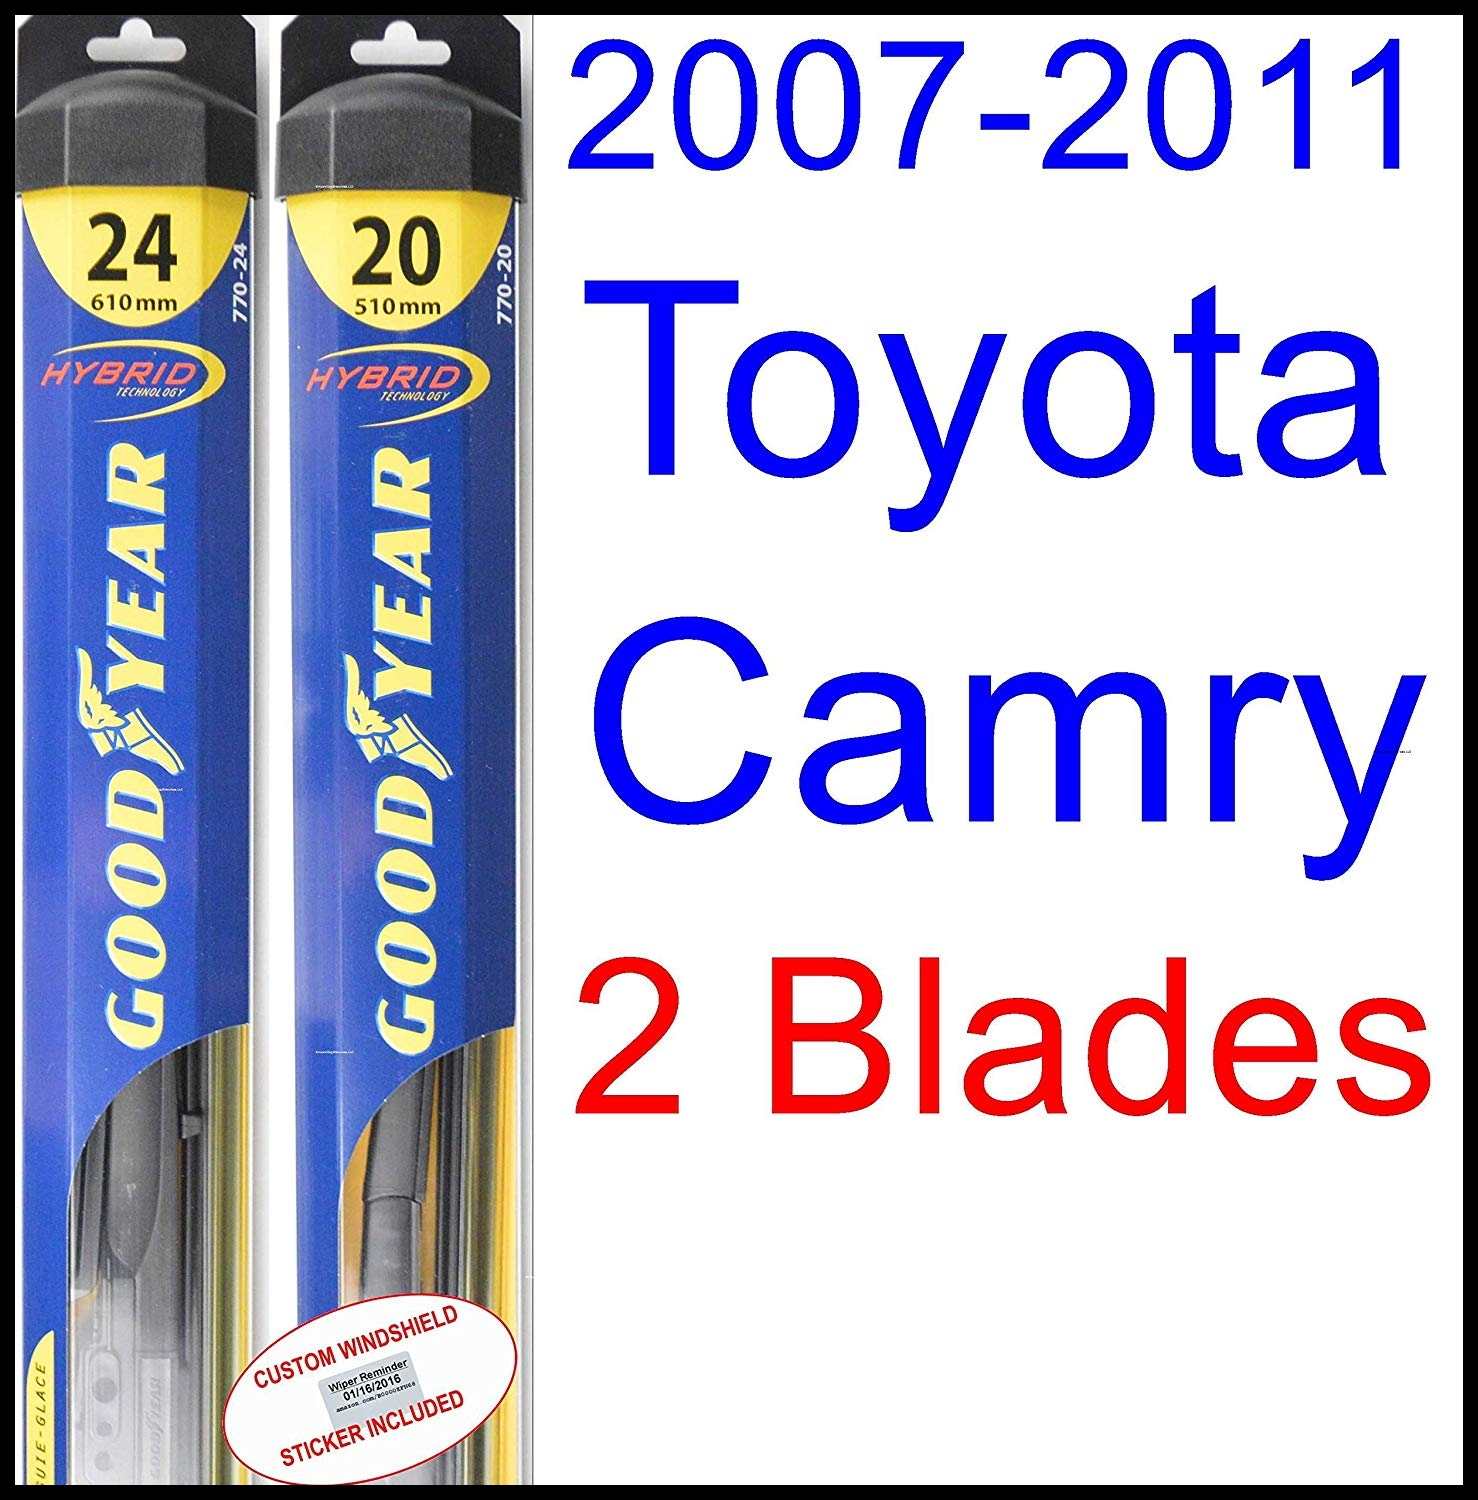 Amazon 2007 2011 Toyota Camry Replacement Wiper Blade Set Kit Set of 2 Blades Goodyear Wiper Blades Hybrid 2008 2009 2010 Automotive